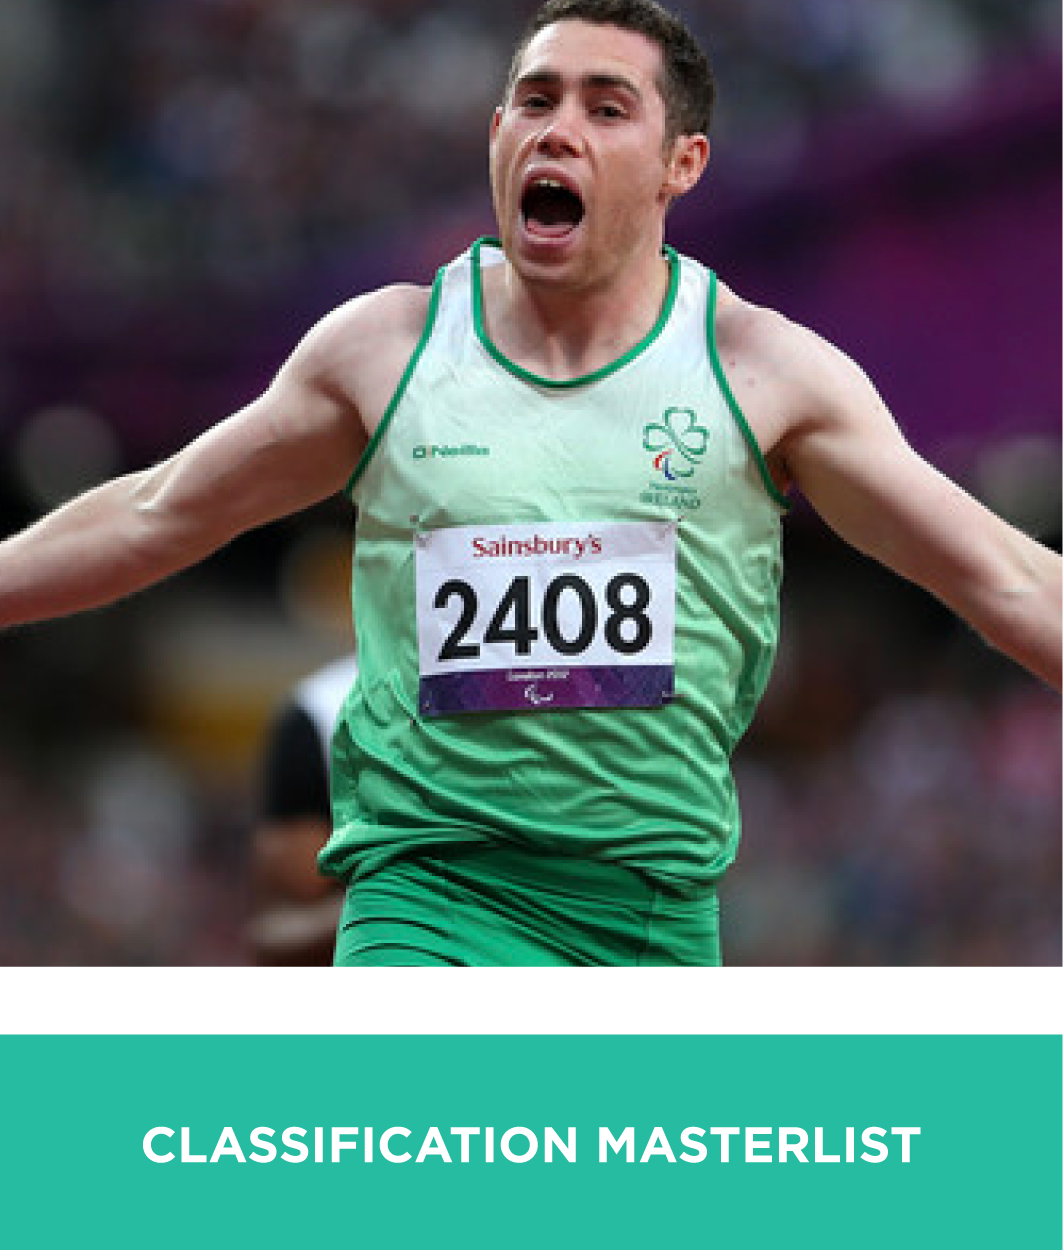 Classification_images_Masterlist.png